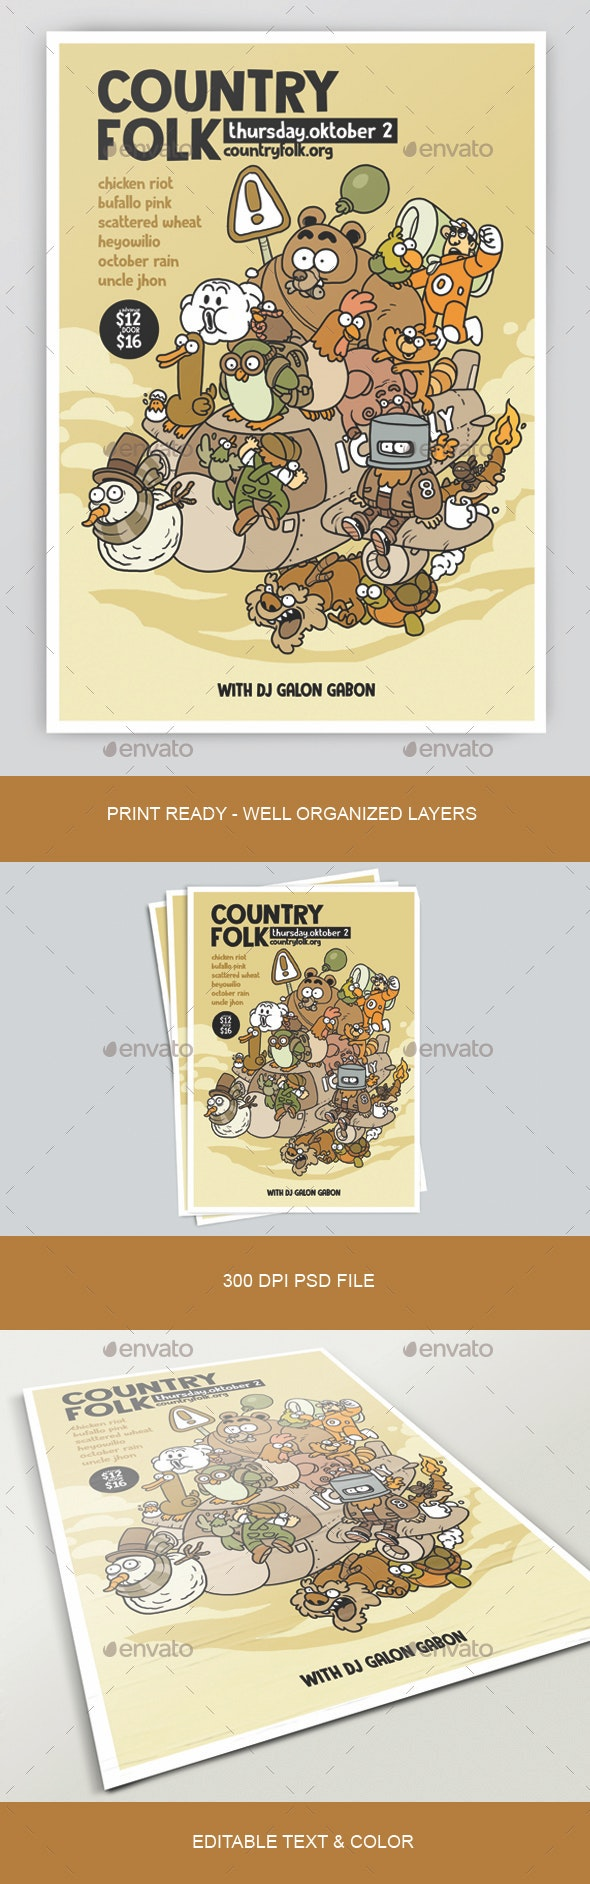 Country Folk Poster - Concerts Events